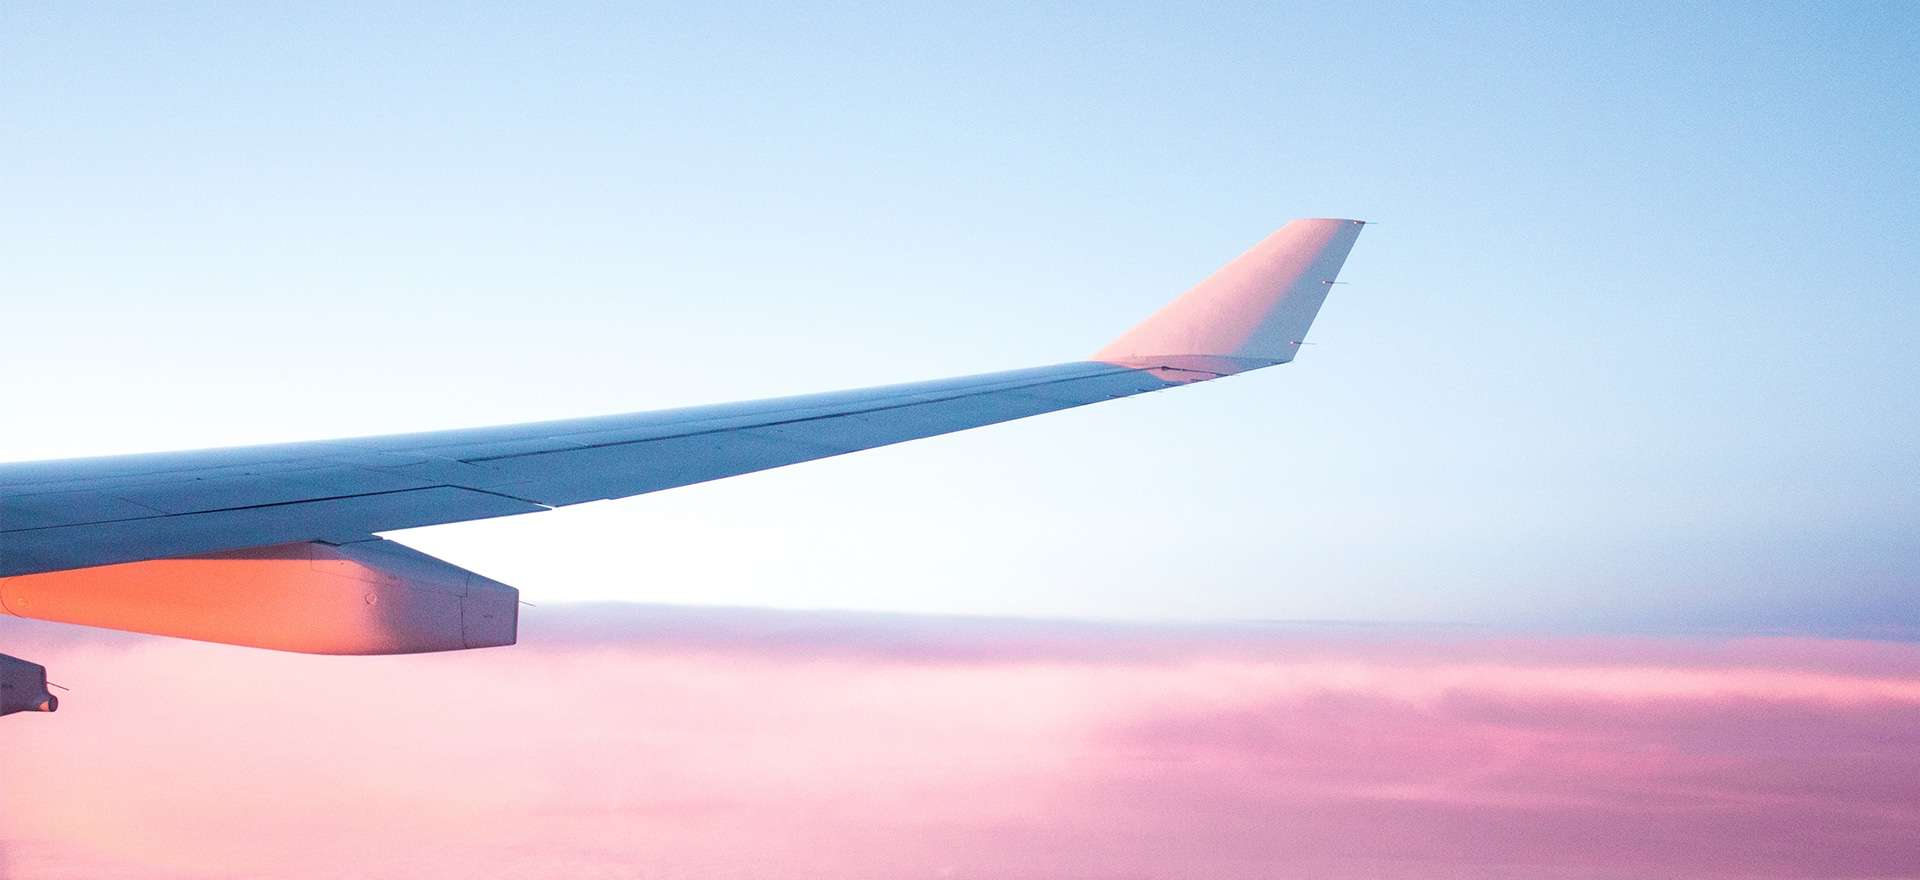 Three Keys to an Effective Employer-Designated Vacation Policy